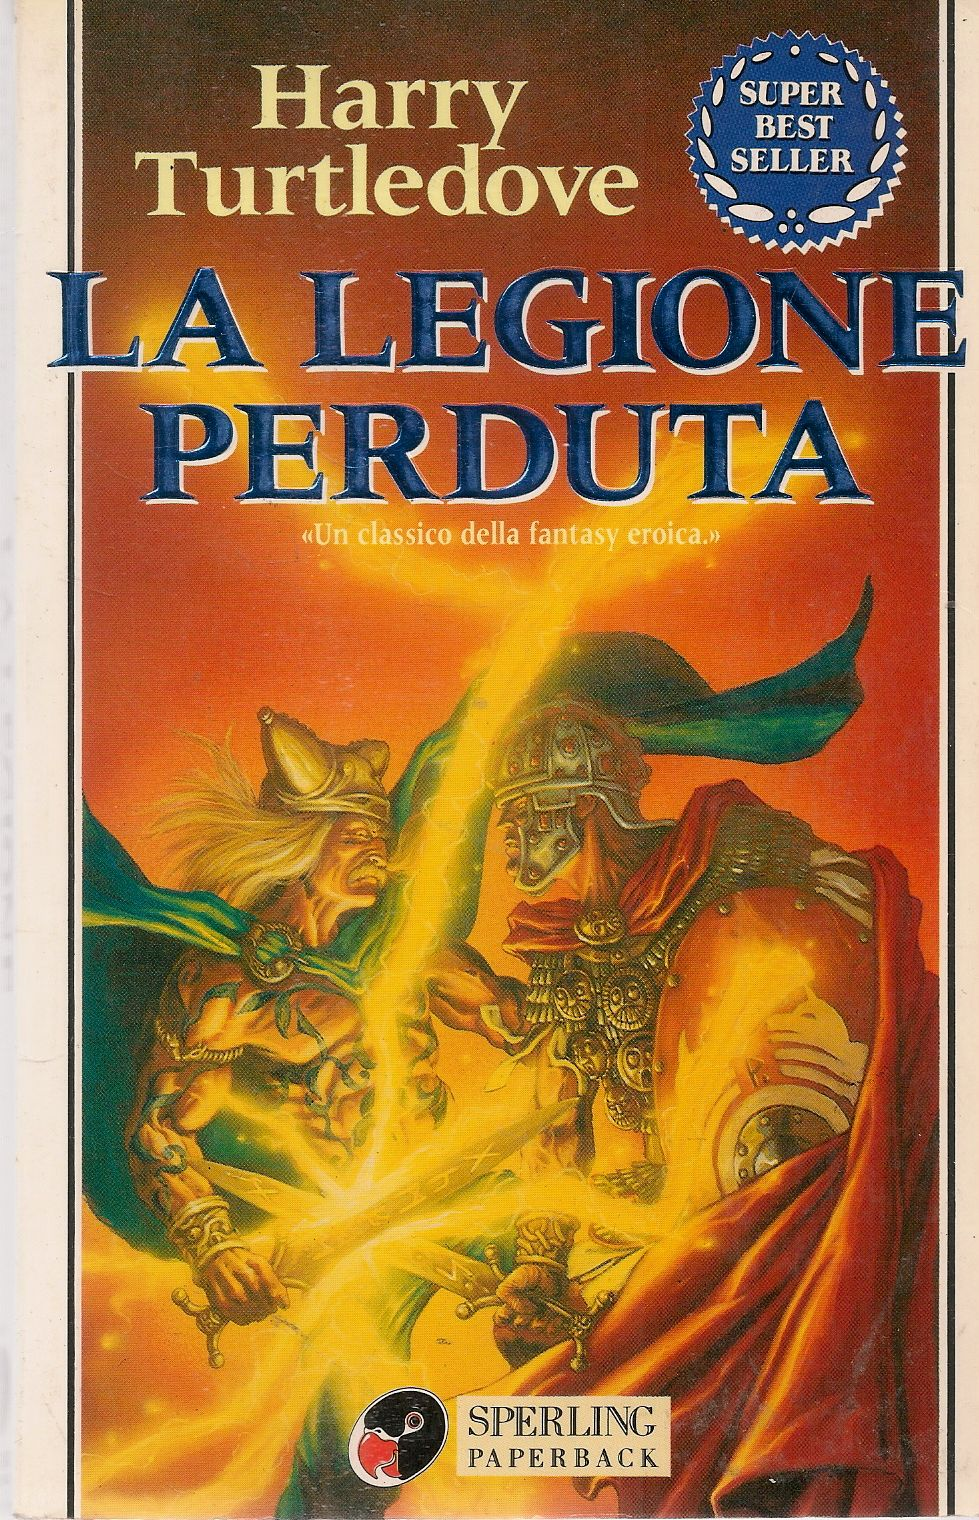 LA LEGIONE PERDUTA - HARRY TURTLEDOVE